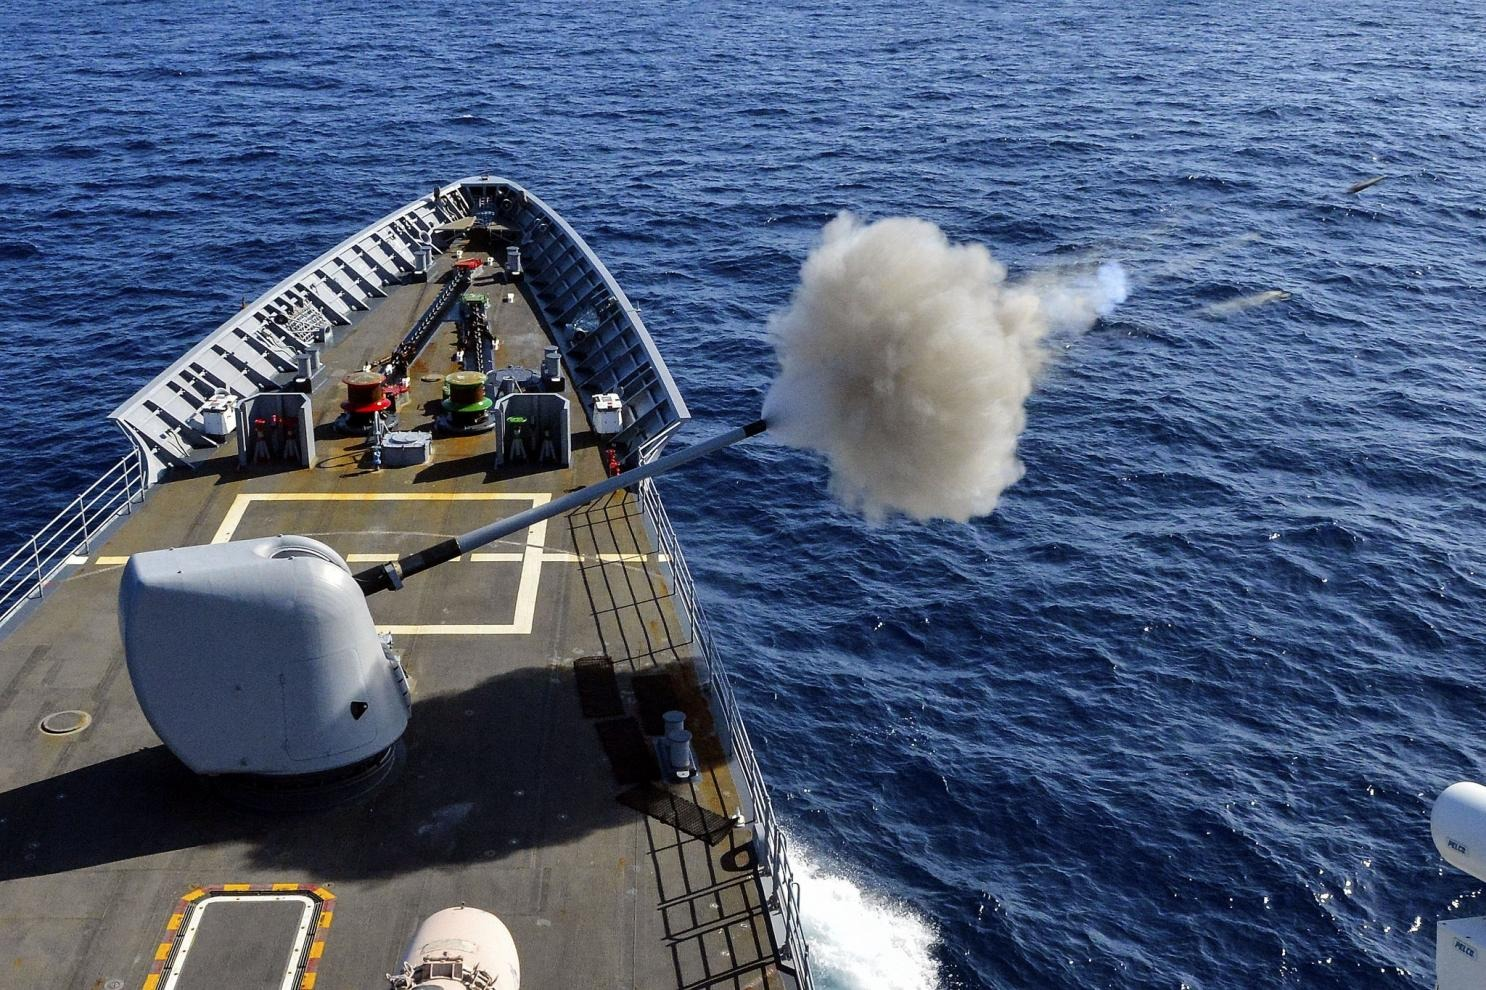 """The Real U.S.-China War We Should Worry About: A """"Range War"""" - Warrior Maven"""